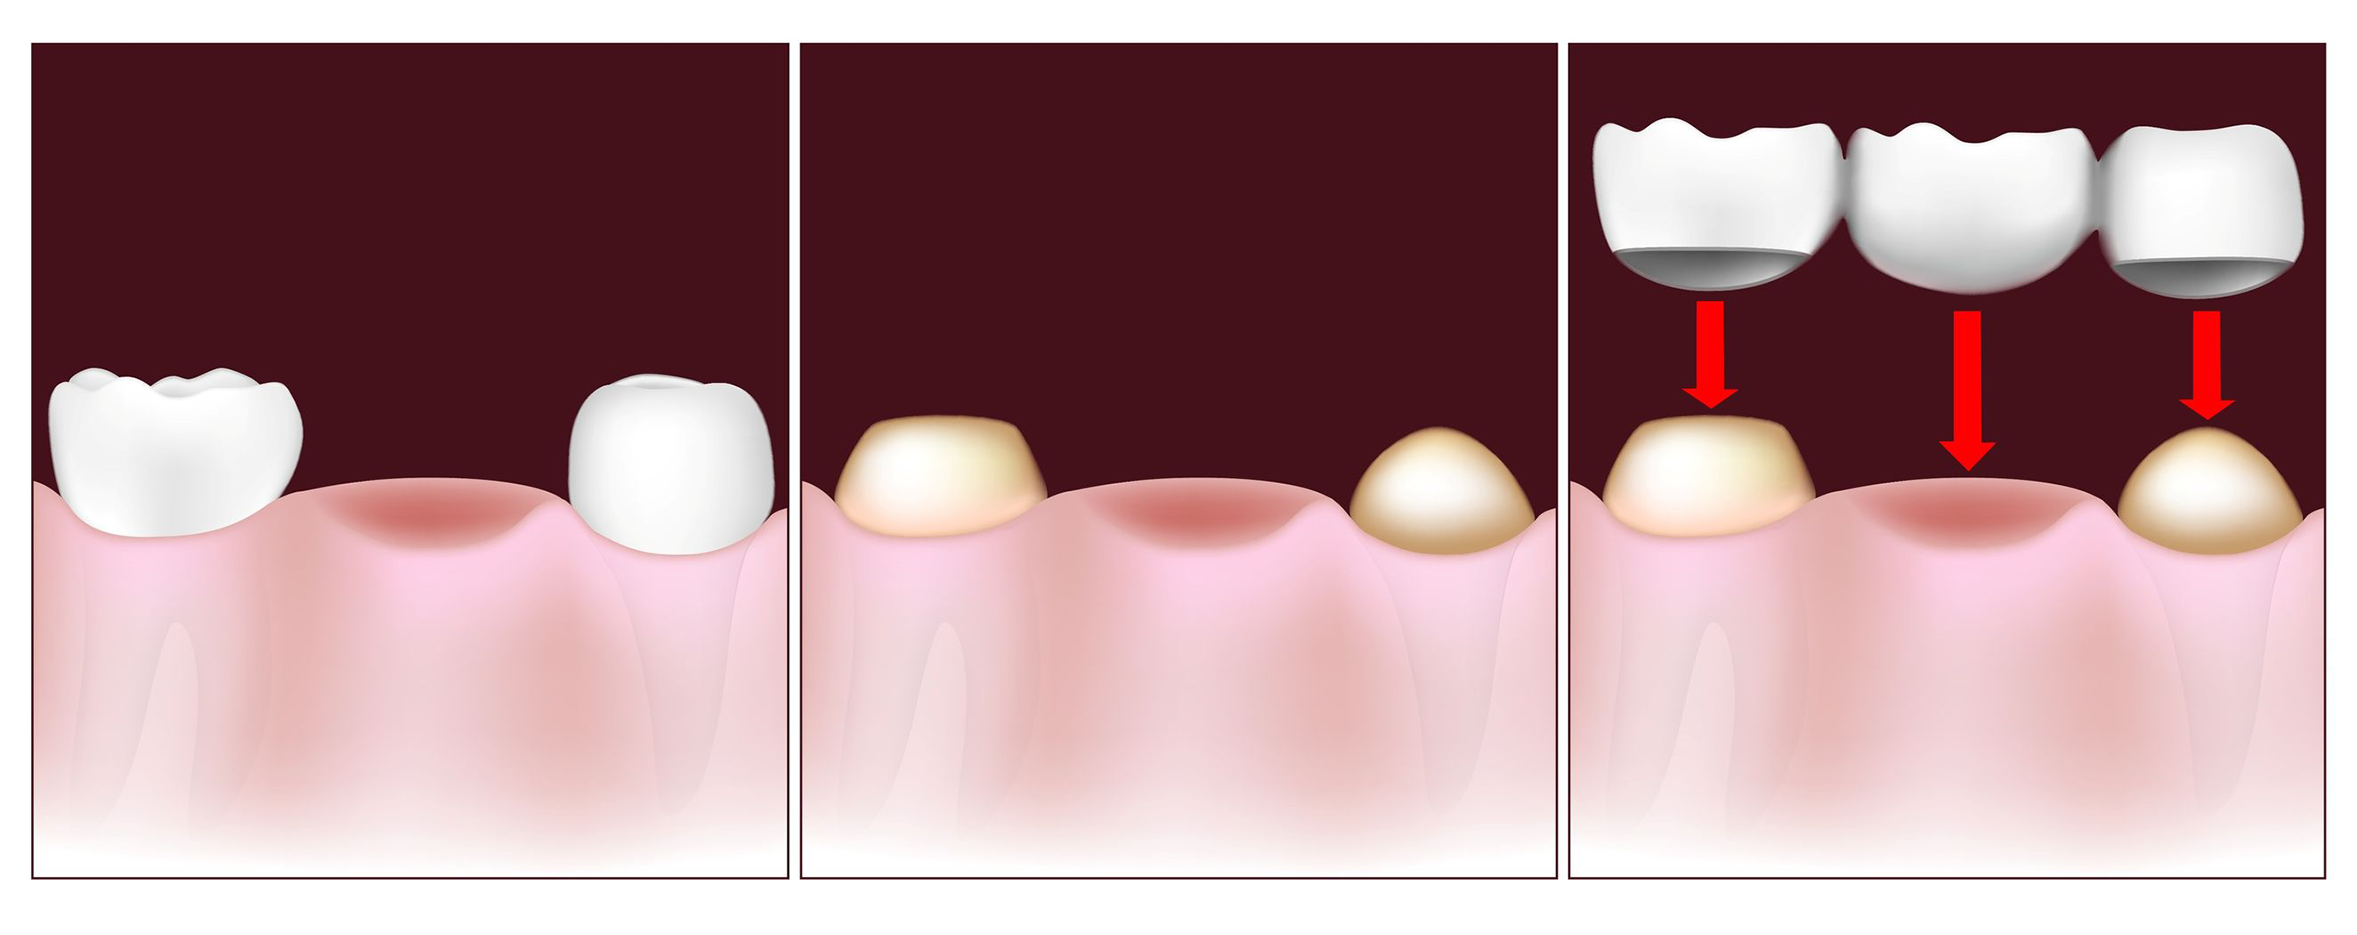 Dr. Wong can make a porcelain bridge to fill gaps in your teeth.